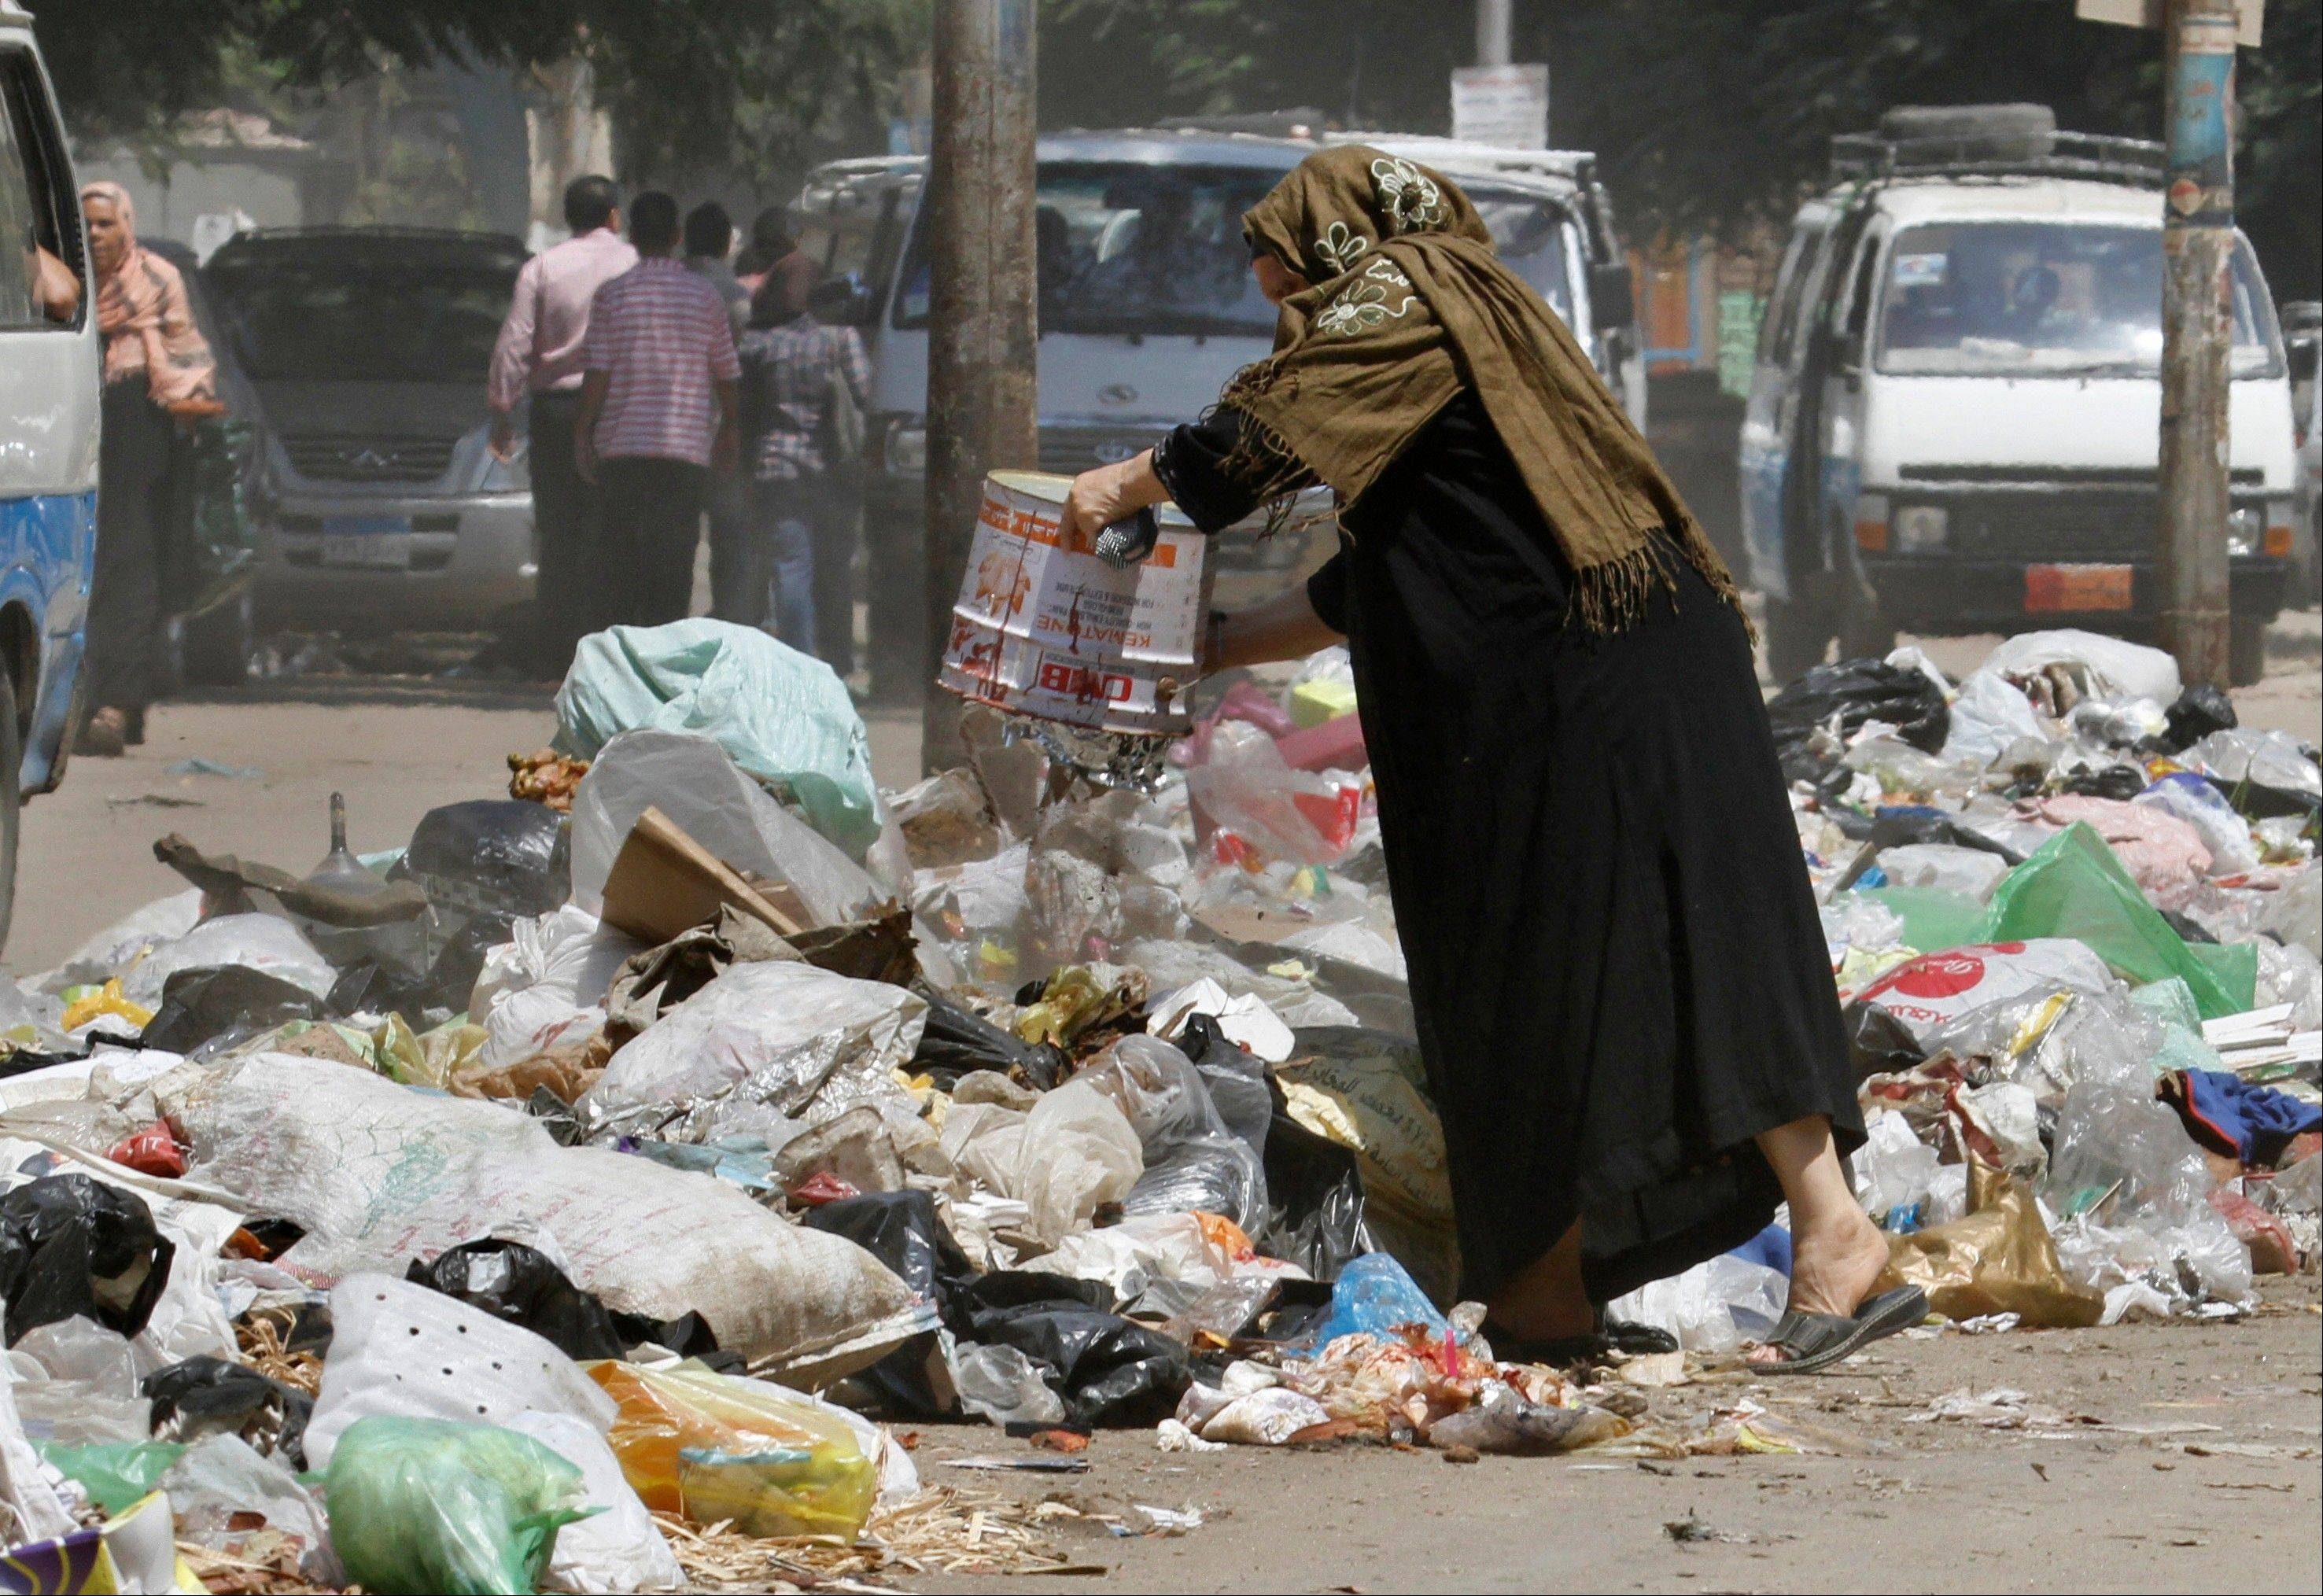 A woman throws her waste in a street in Cairo.